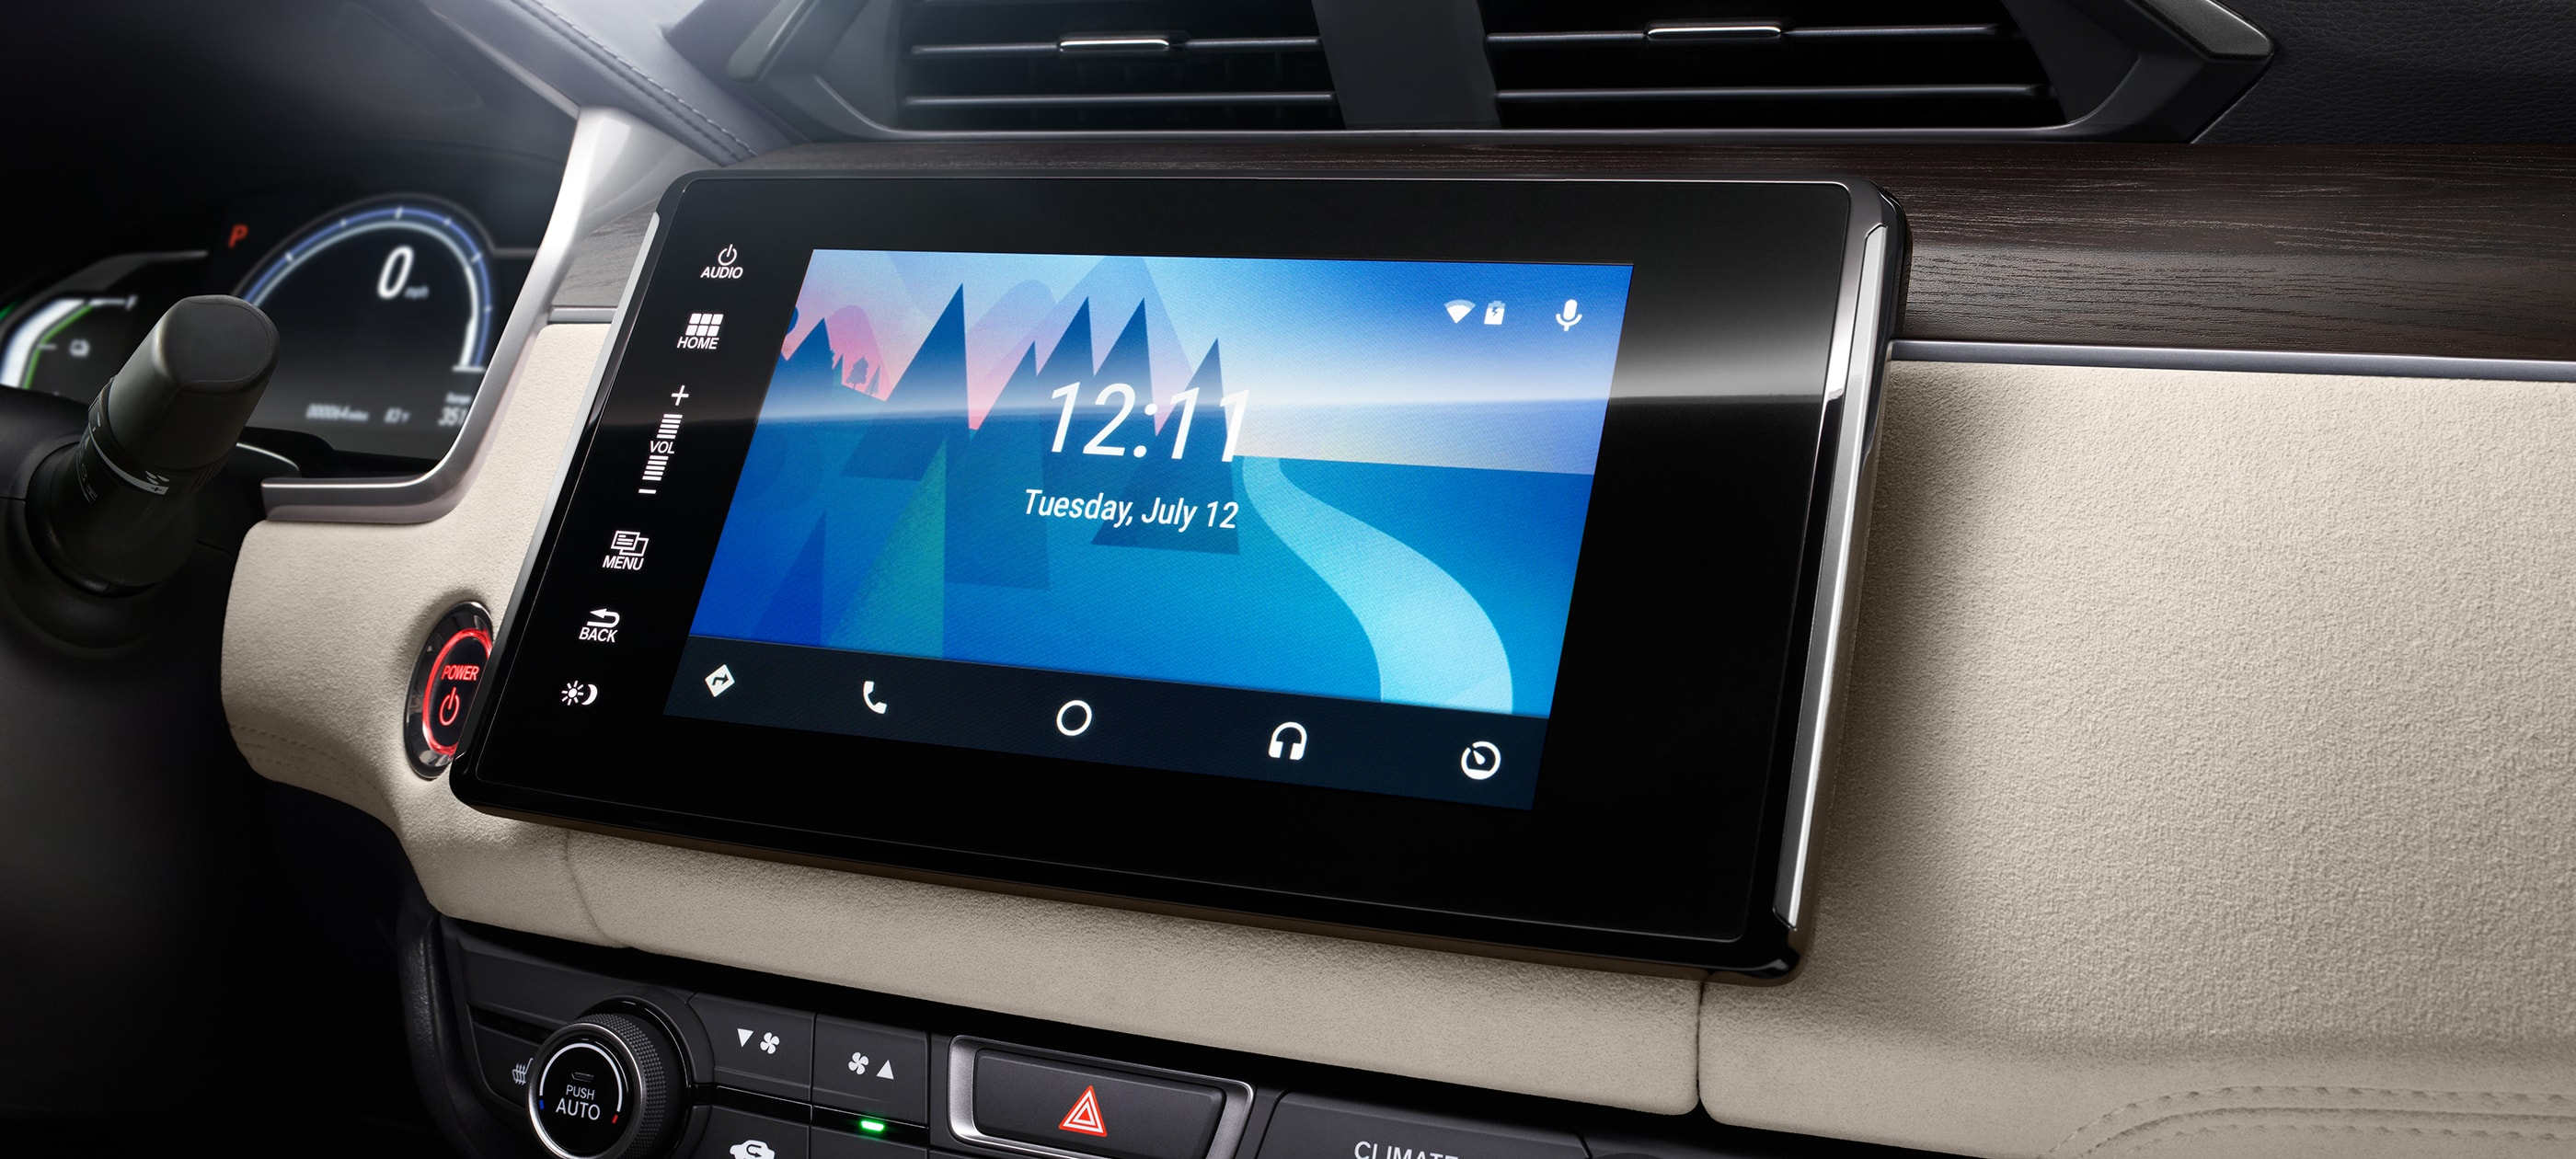 Android Auto™ detail on Display Audio touch-screen in 2019 Honda Clarity PHEV with beige interior.